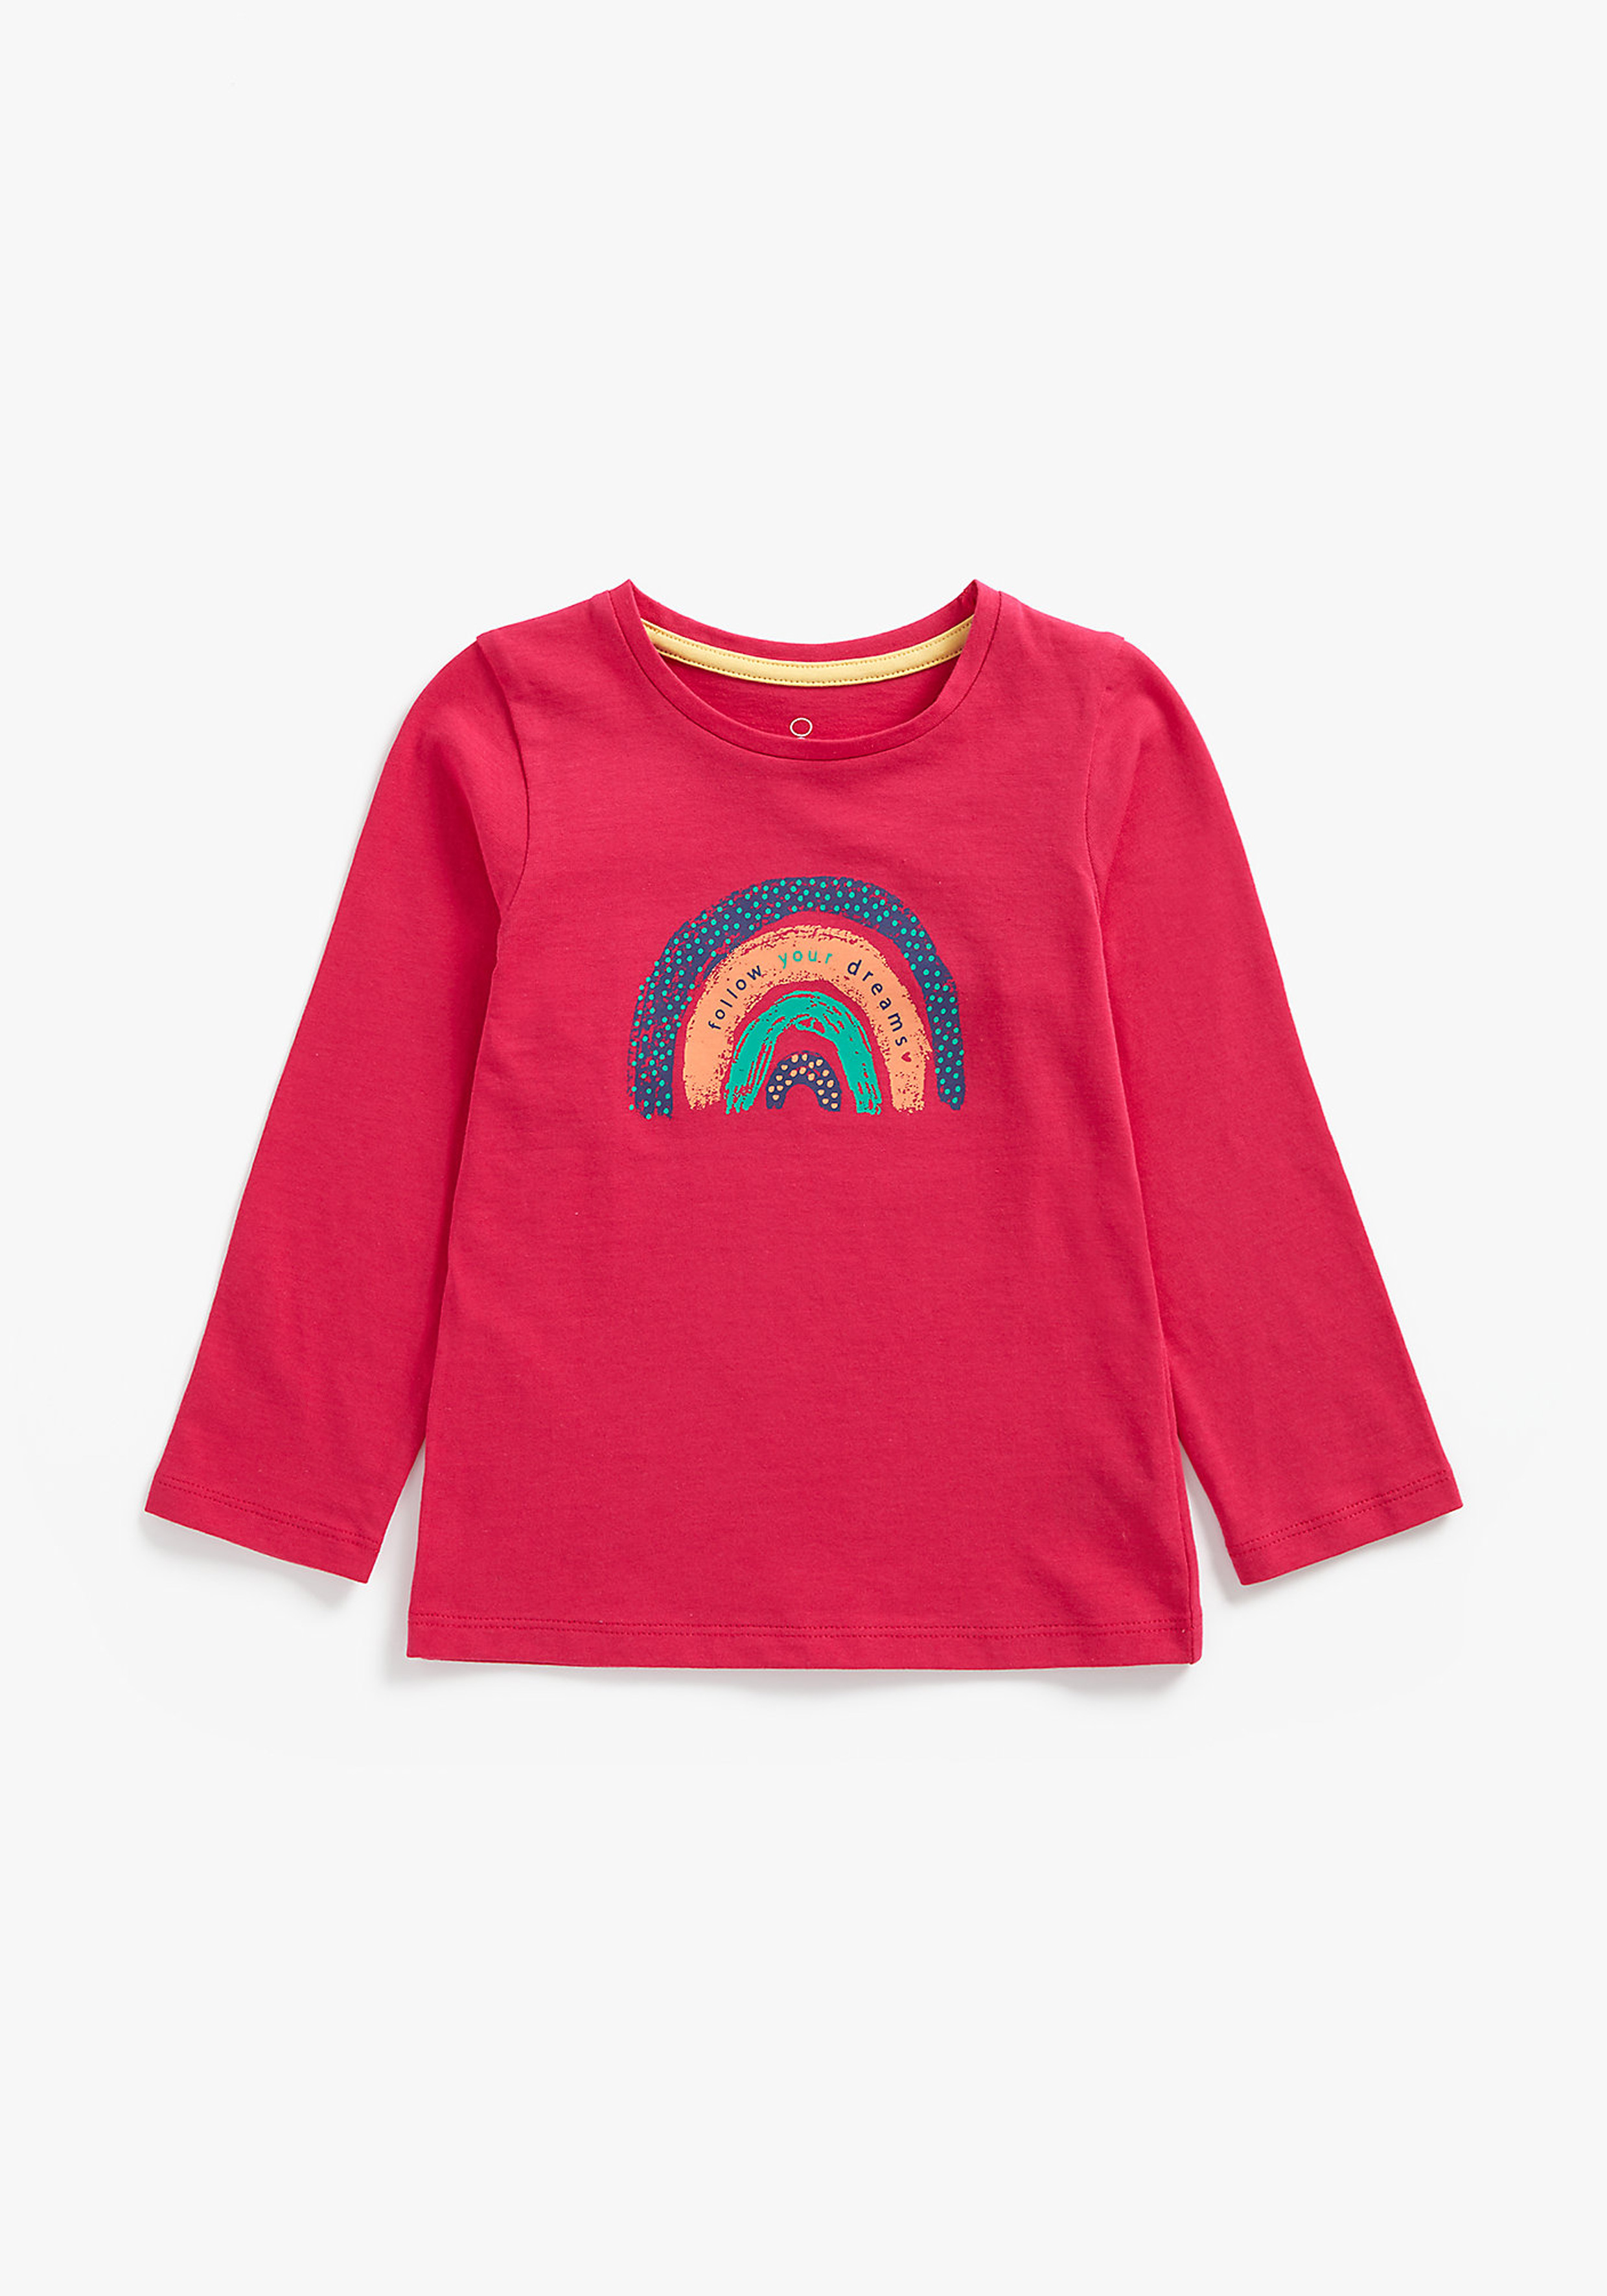 Mothercare | Girls Full Sleeves T-Shirt Rainbow With Text Print - Red